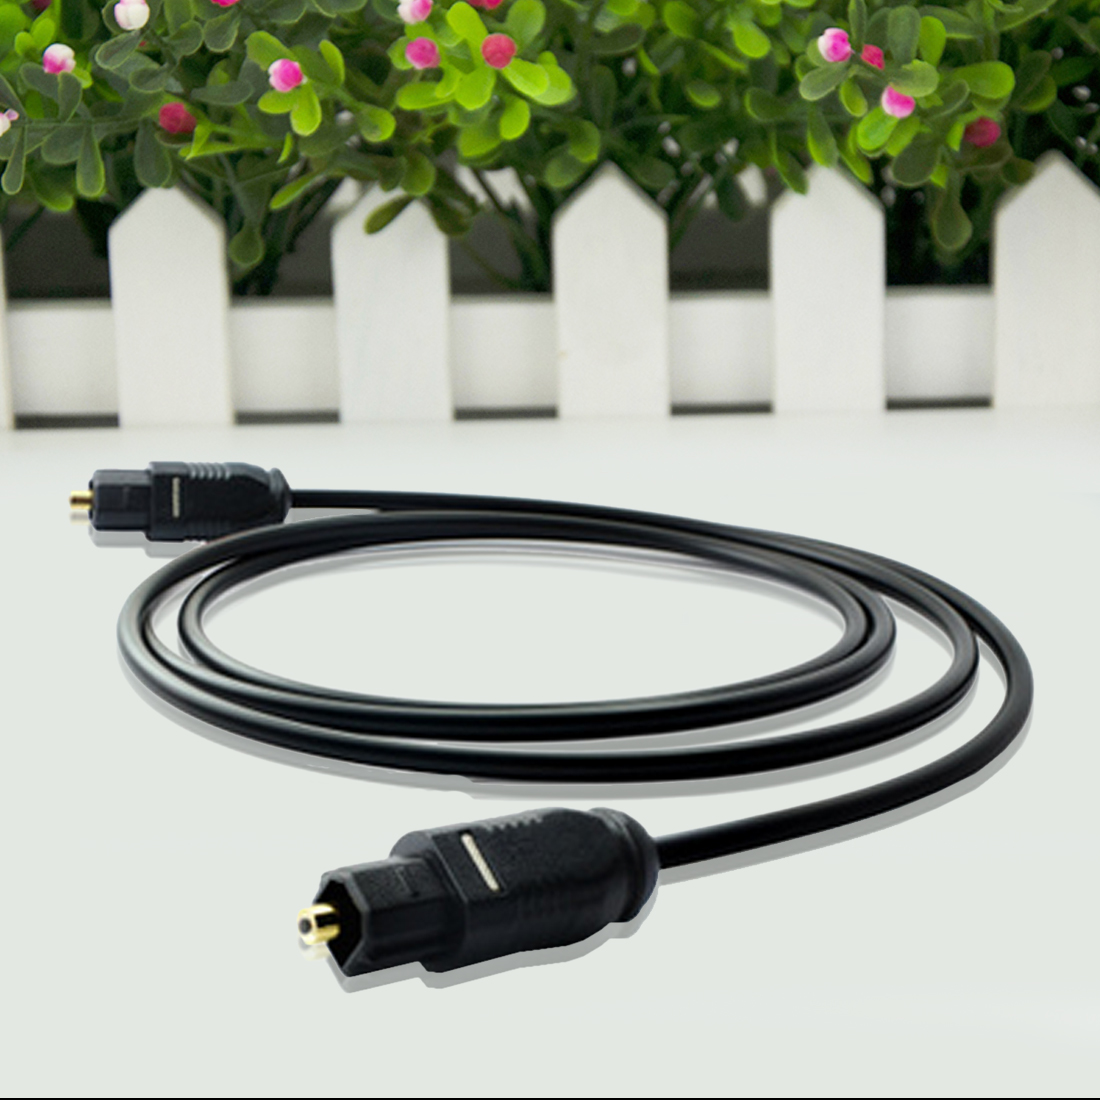 centechia New 1m 1.5m 2m 3m M/M Male Digital Audio Optical Fiber Optic For Toslink Cable Cord DVD CD Hot Worldwide 5 5 premium digital optical fiber optic toslink male to male audio cable golden black 500cm